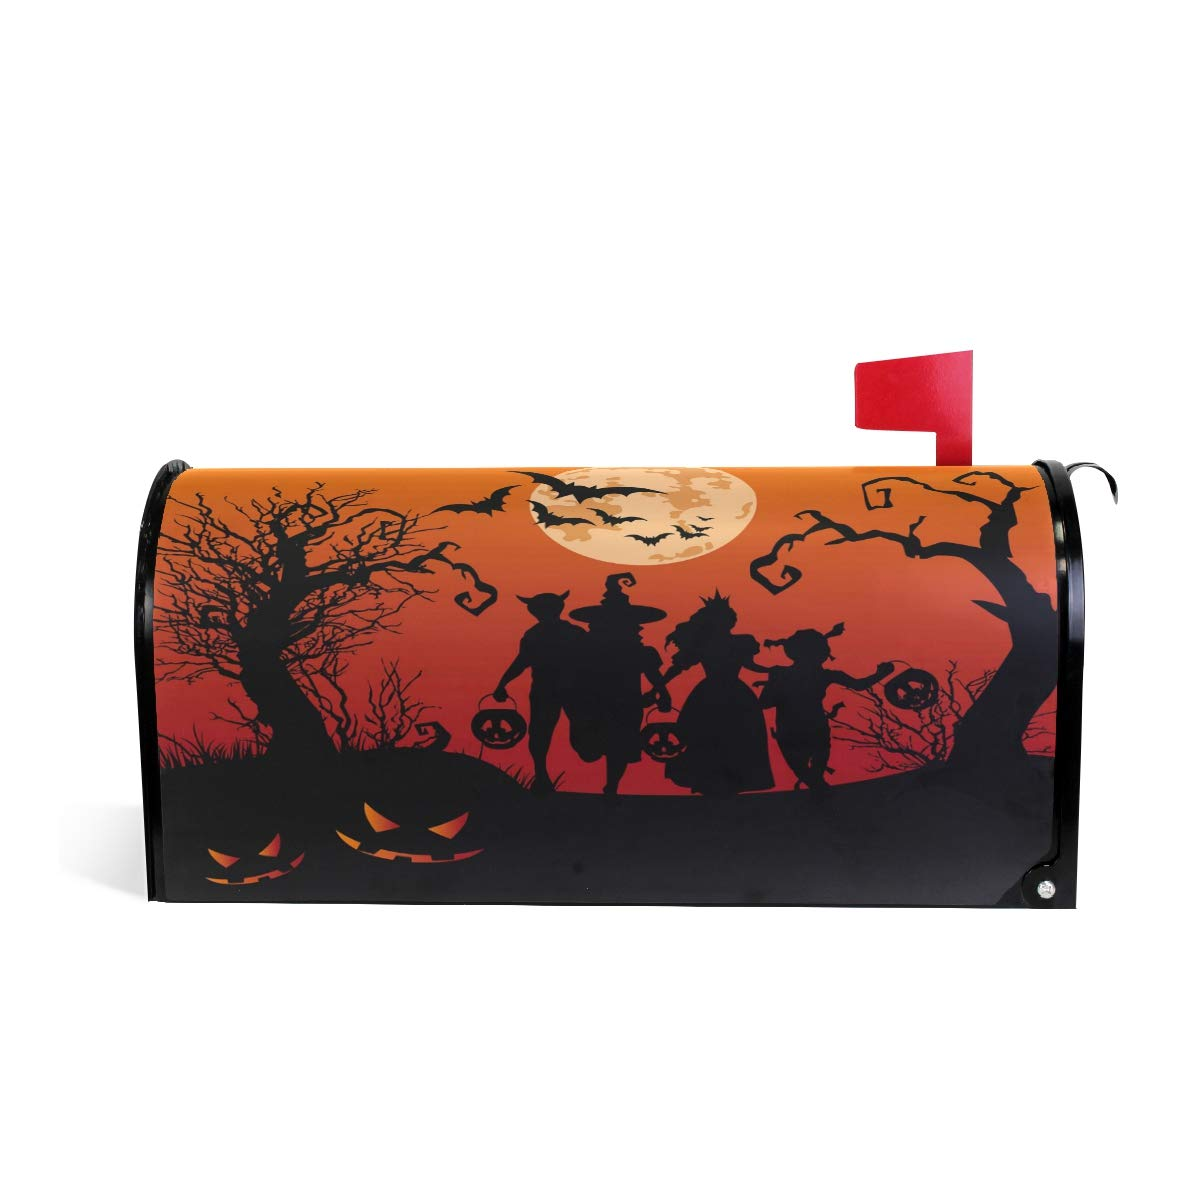 """Naanle Winter Holiday Magnetic Mailbox Cover, Halloween Mailbox Wrap Home Decorative for Standard Size 20.8""""(L) x 18""""(W) by Naanle"""